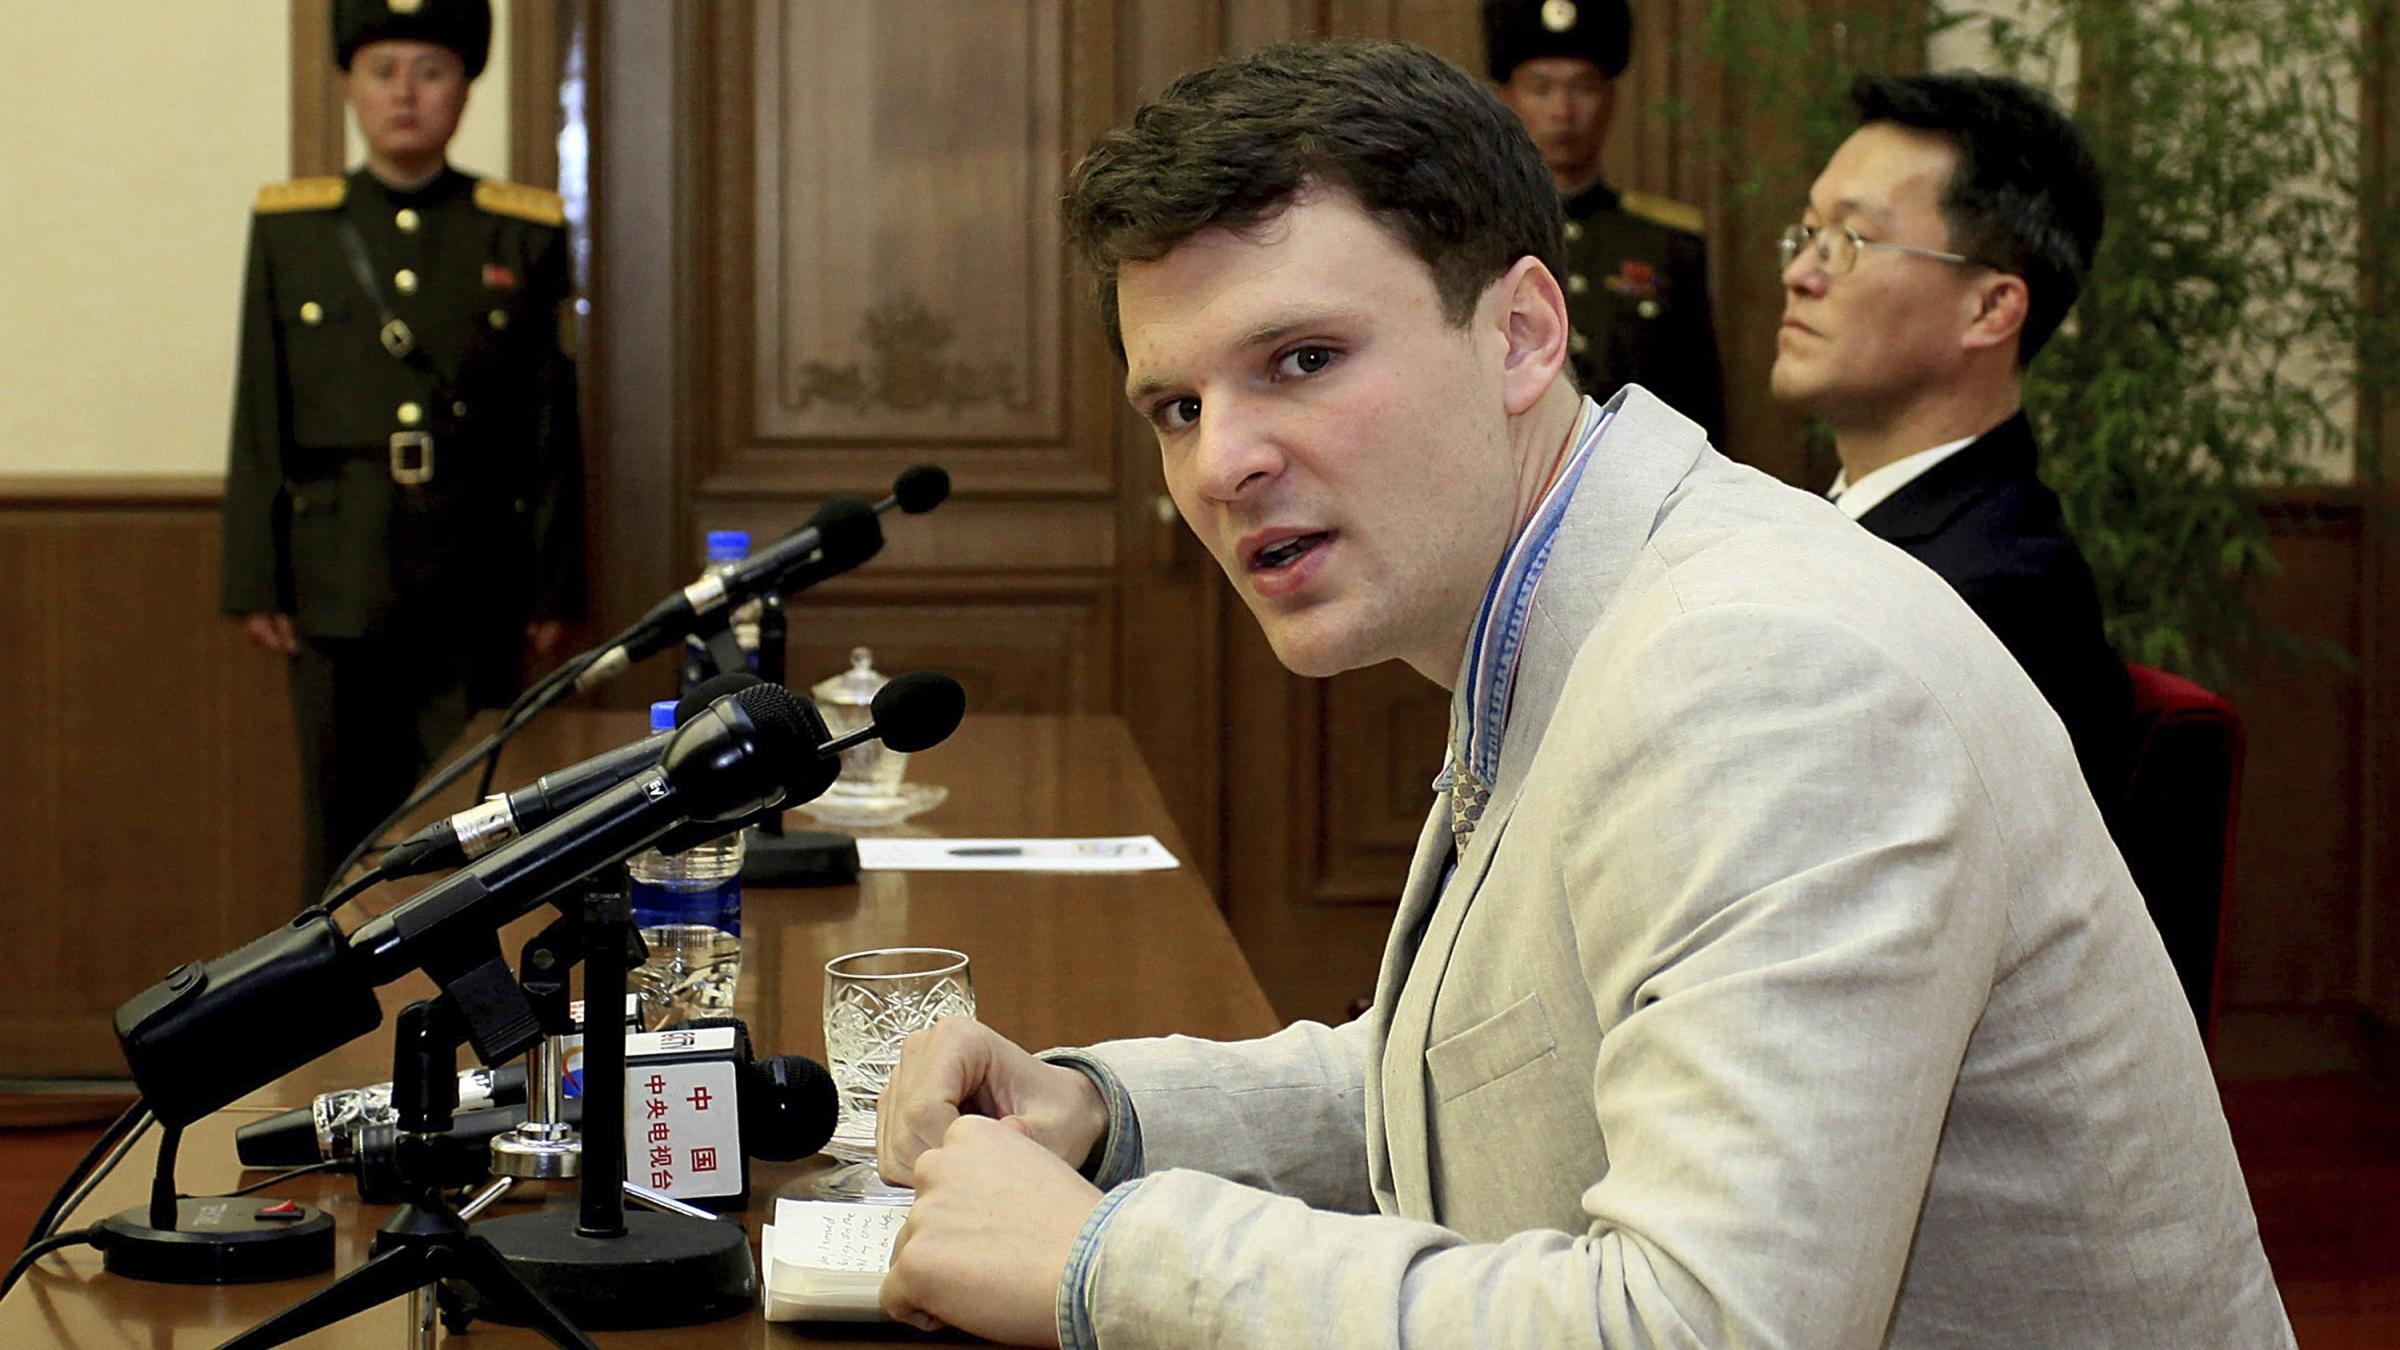 UVa. student detained in North Korea released after 17 months